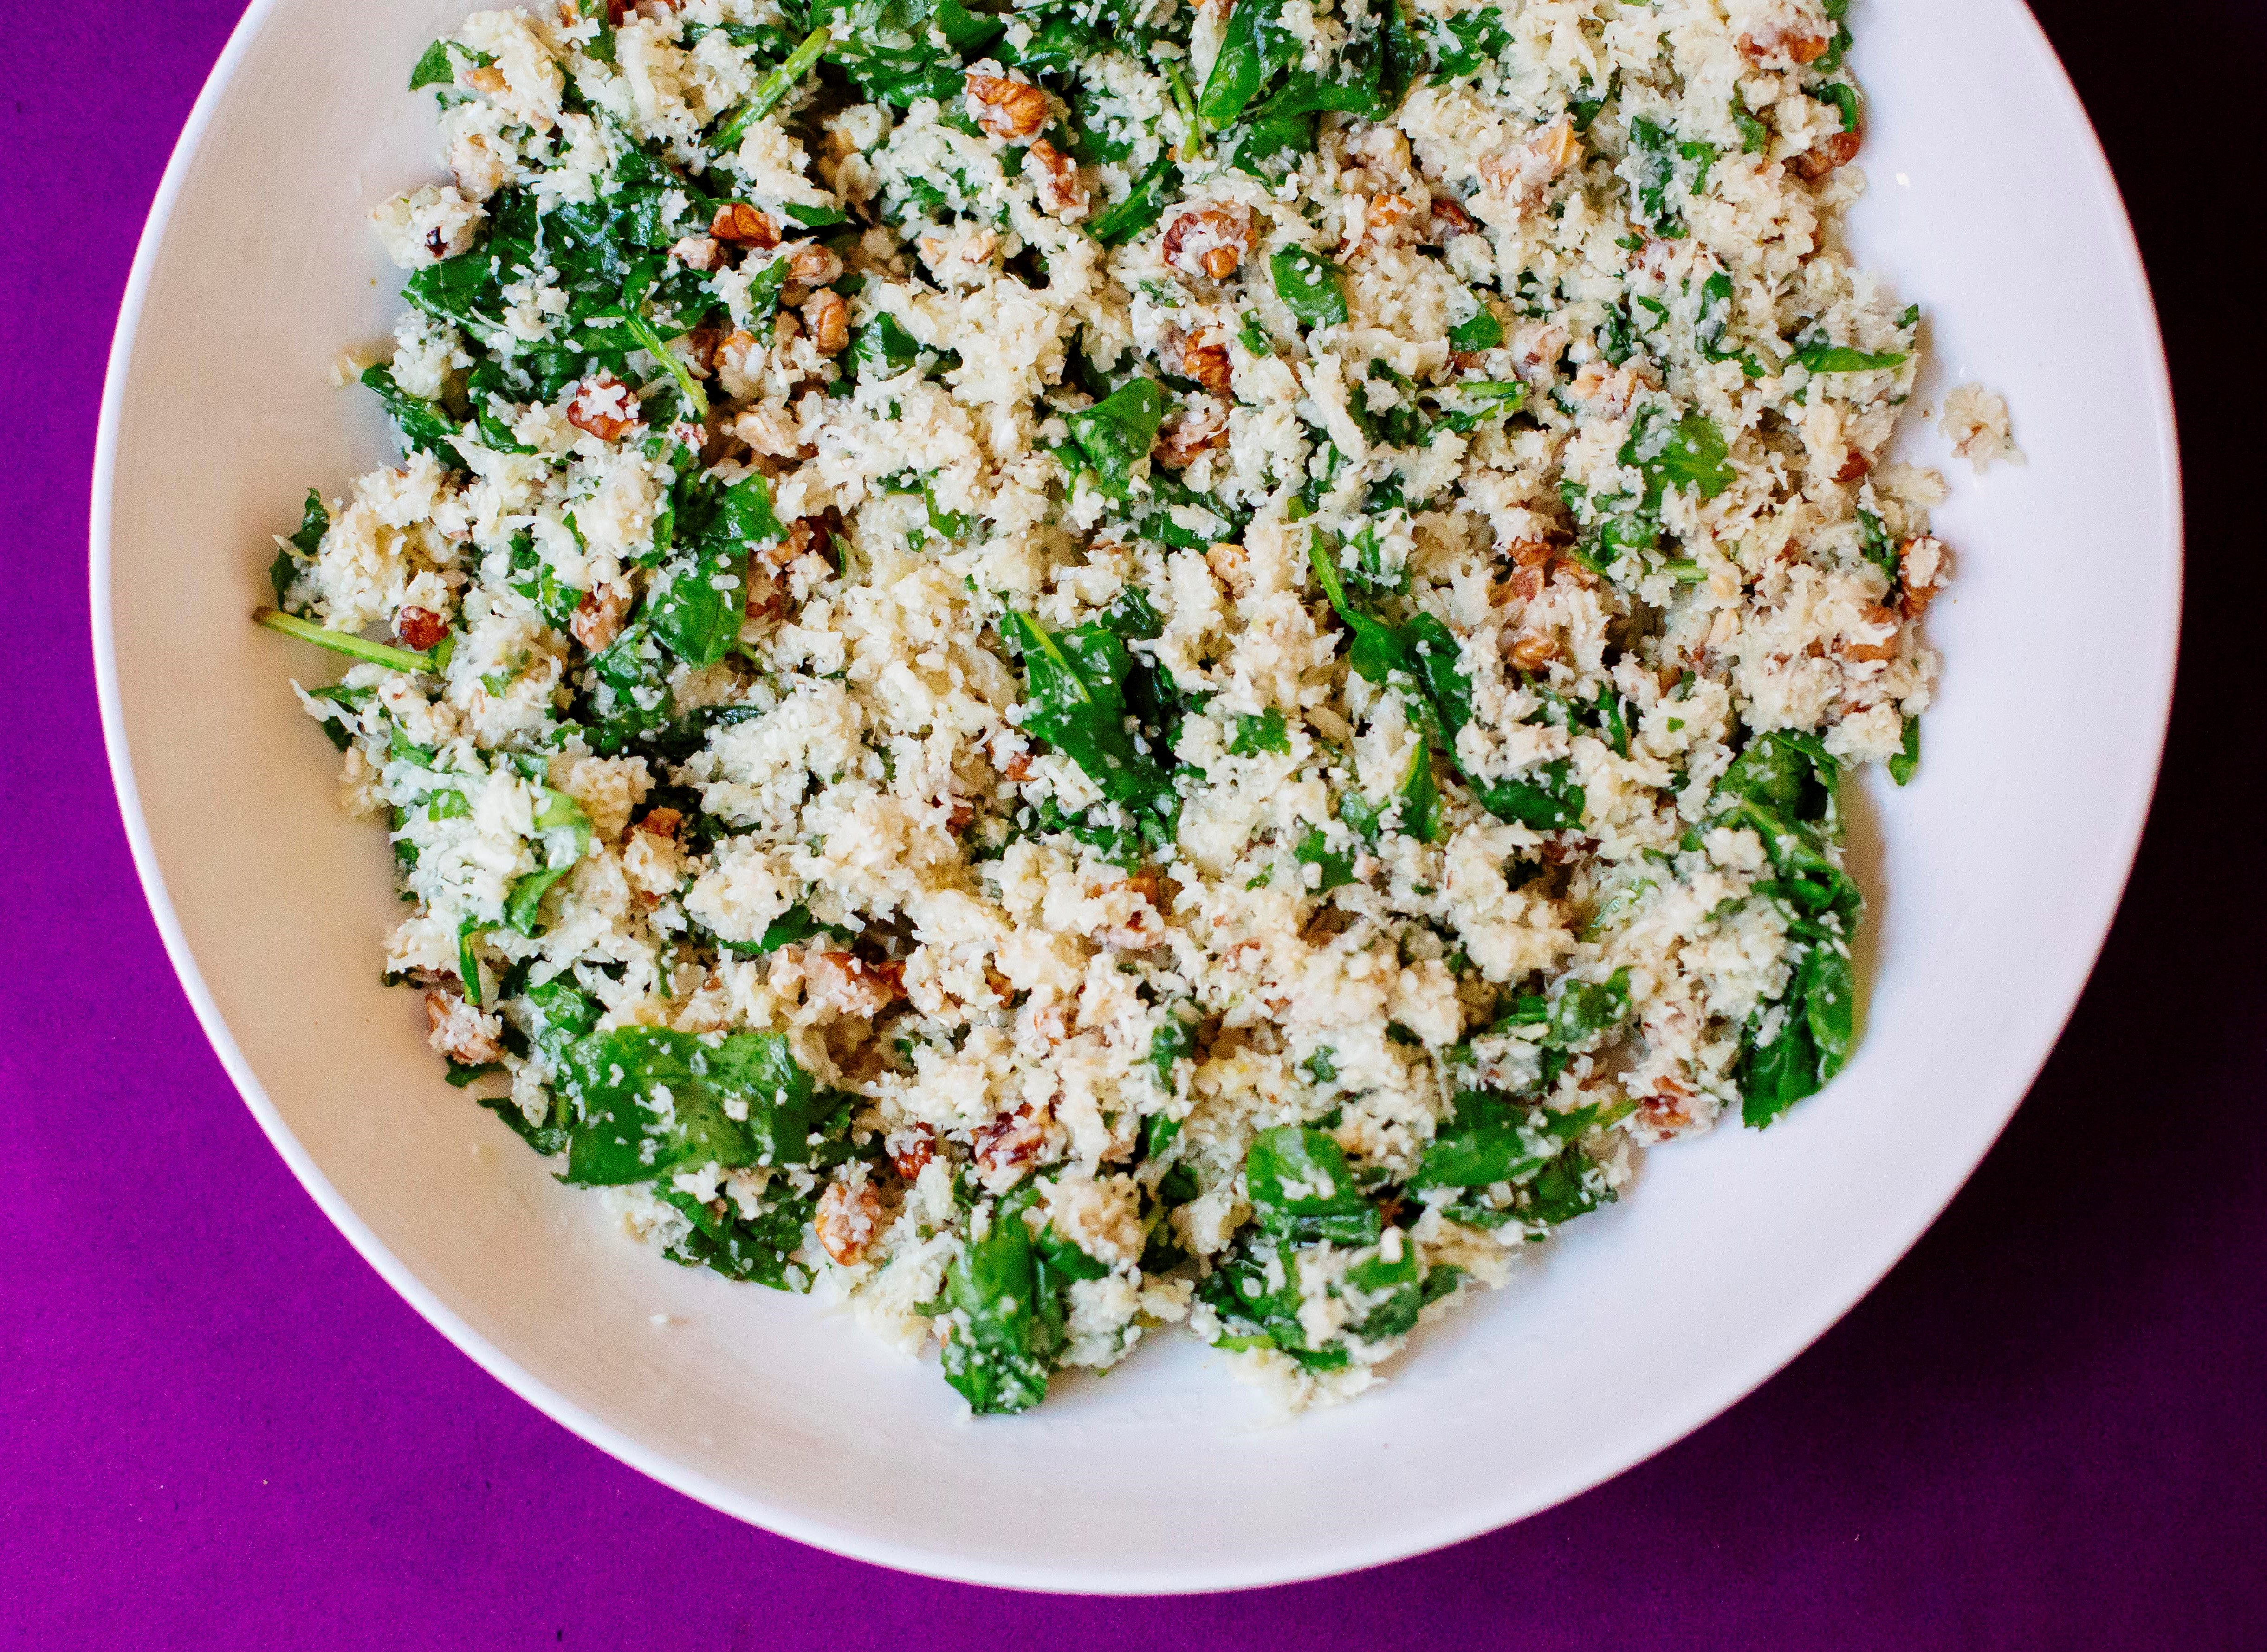 Walnnut Spinach Couscous